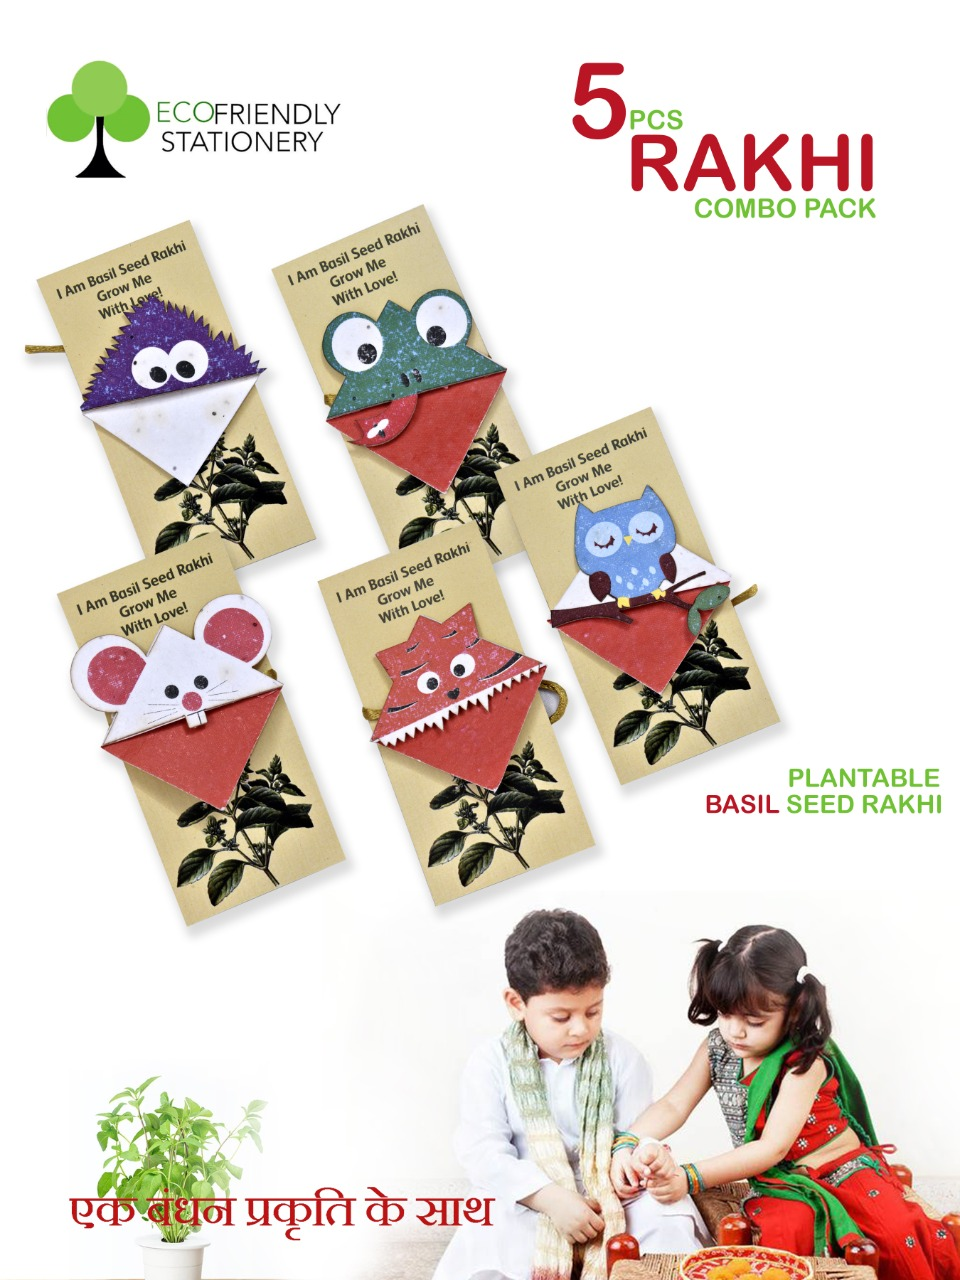 Rakhi Set of 5 Eco Friendly Recyclable Rakhi Combo1